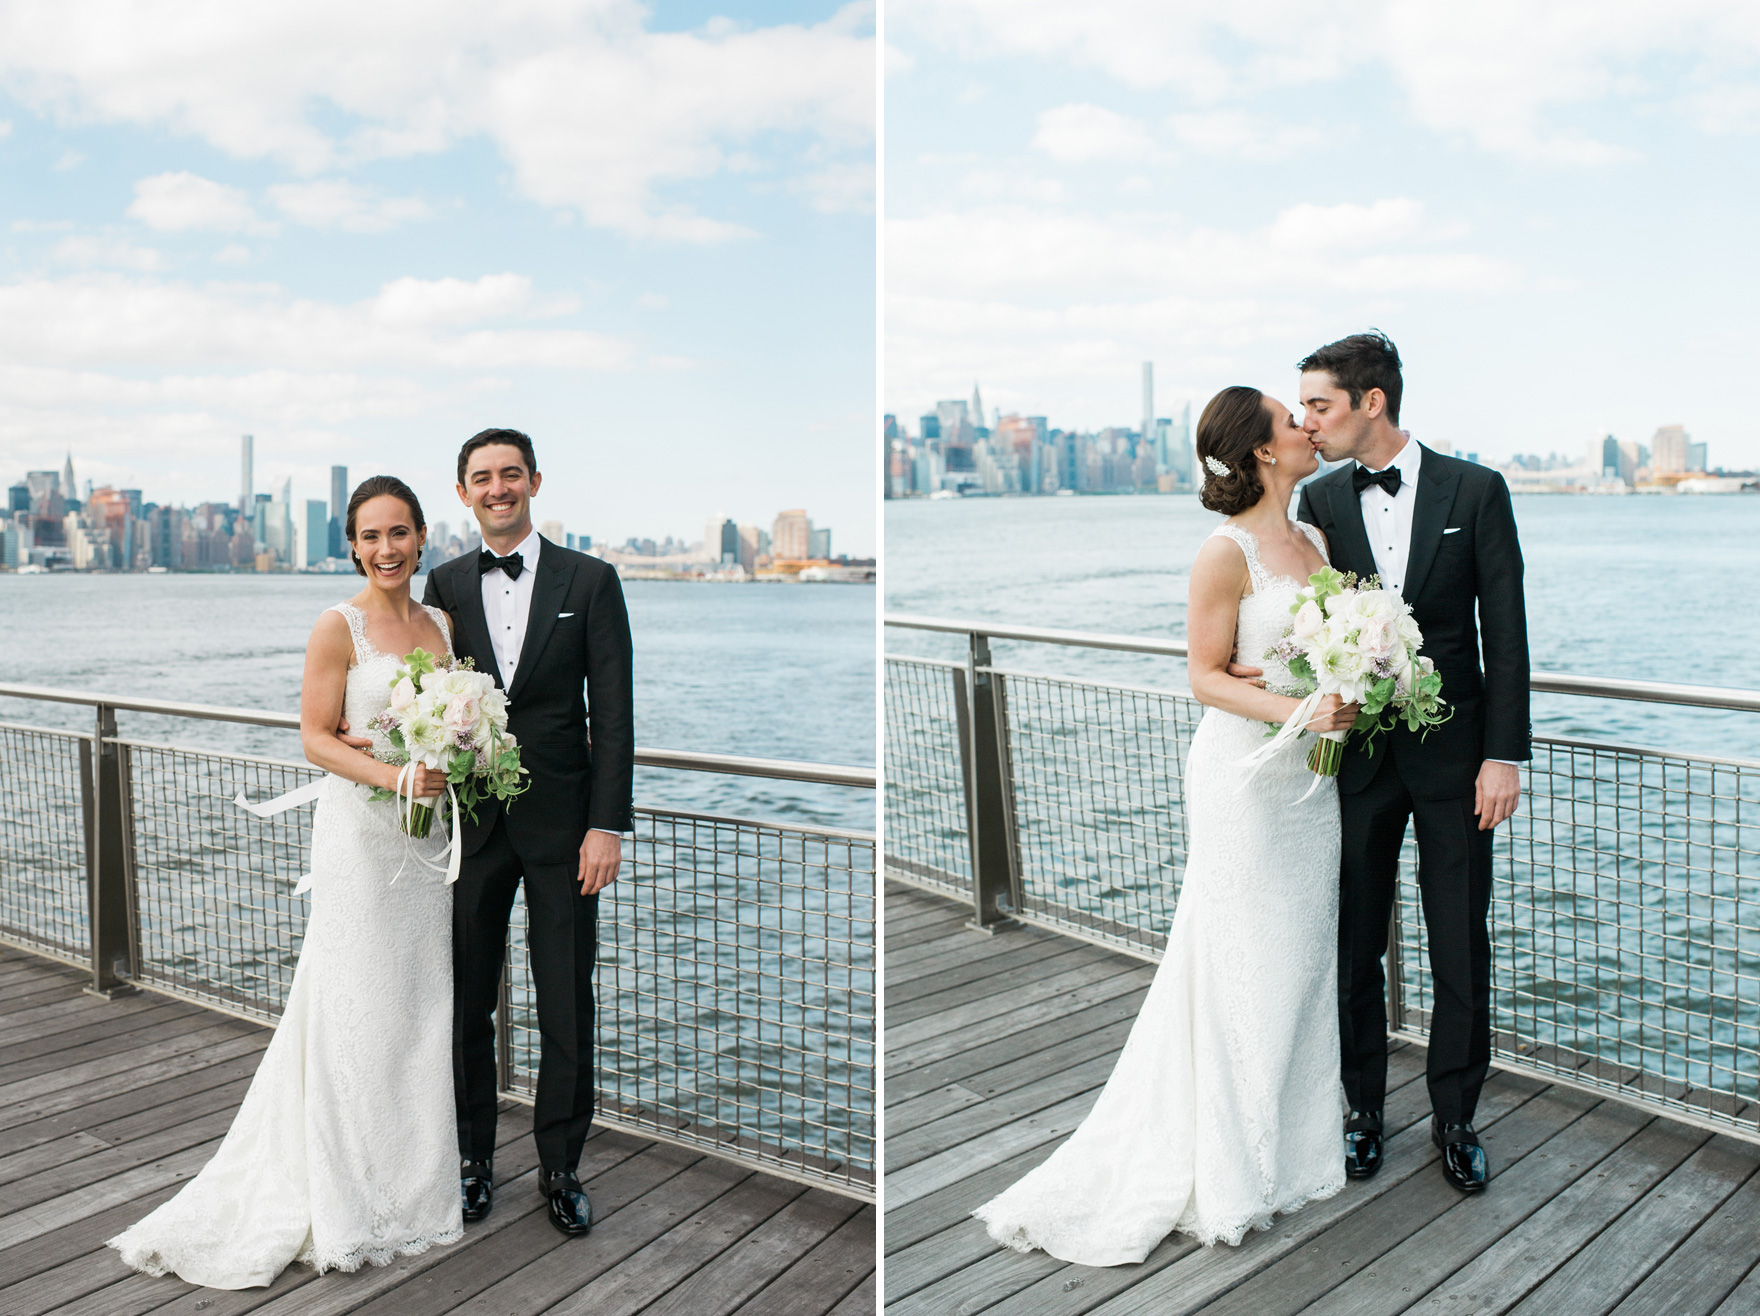 Williamsburg New York Fine Art Wedding by Christina Lilly Photography023